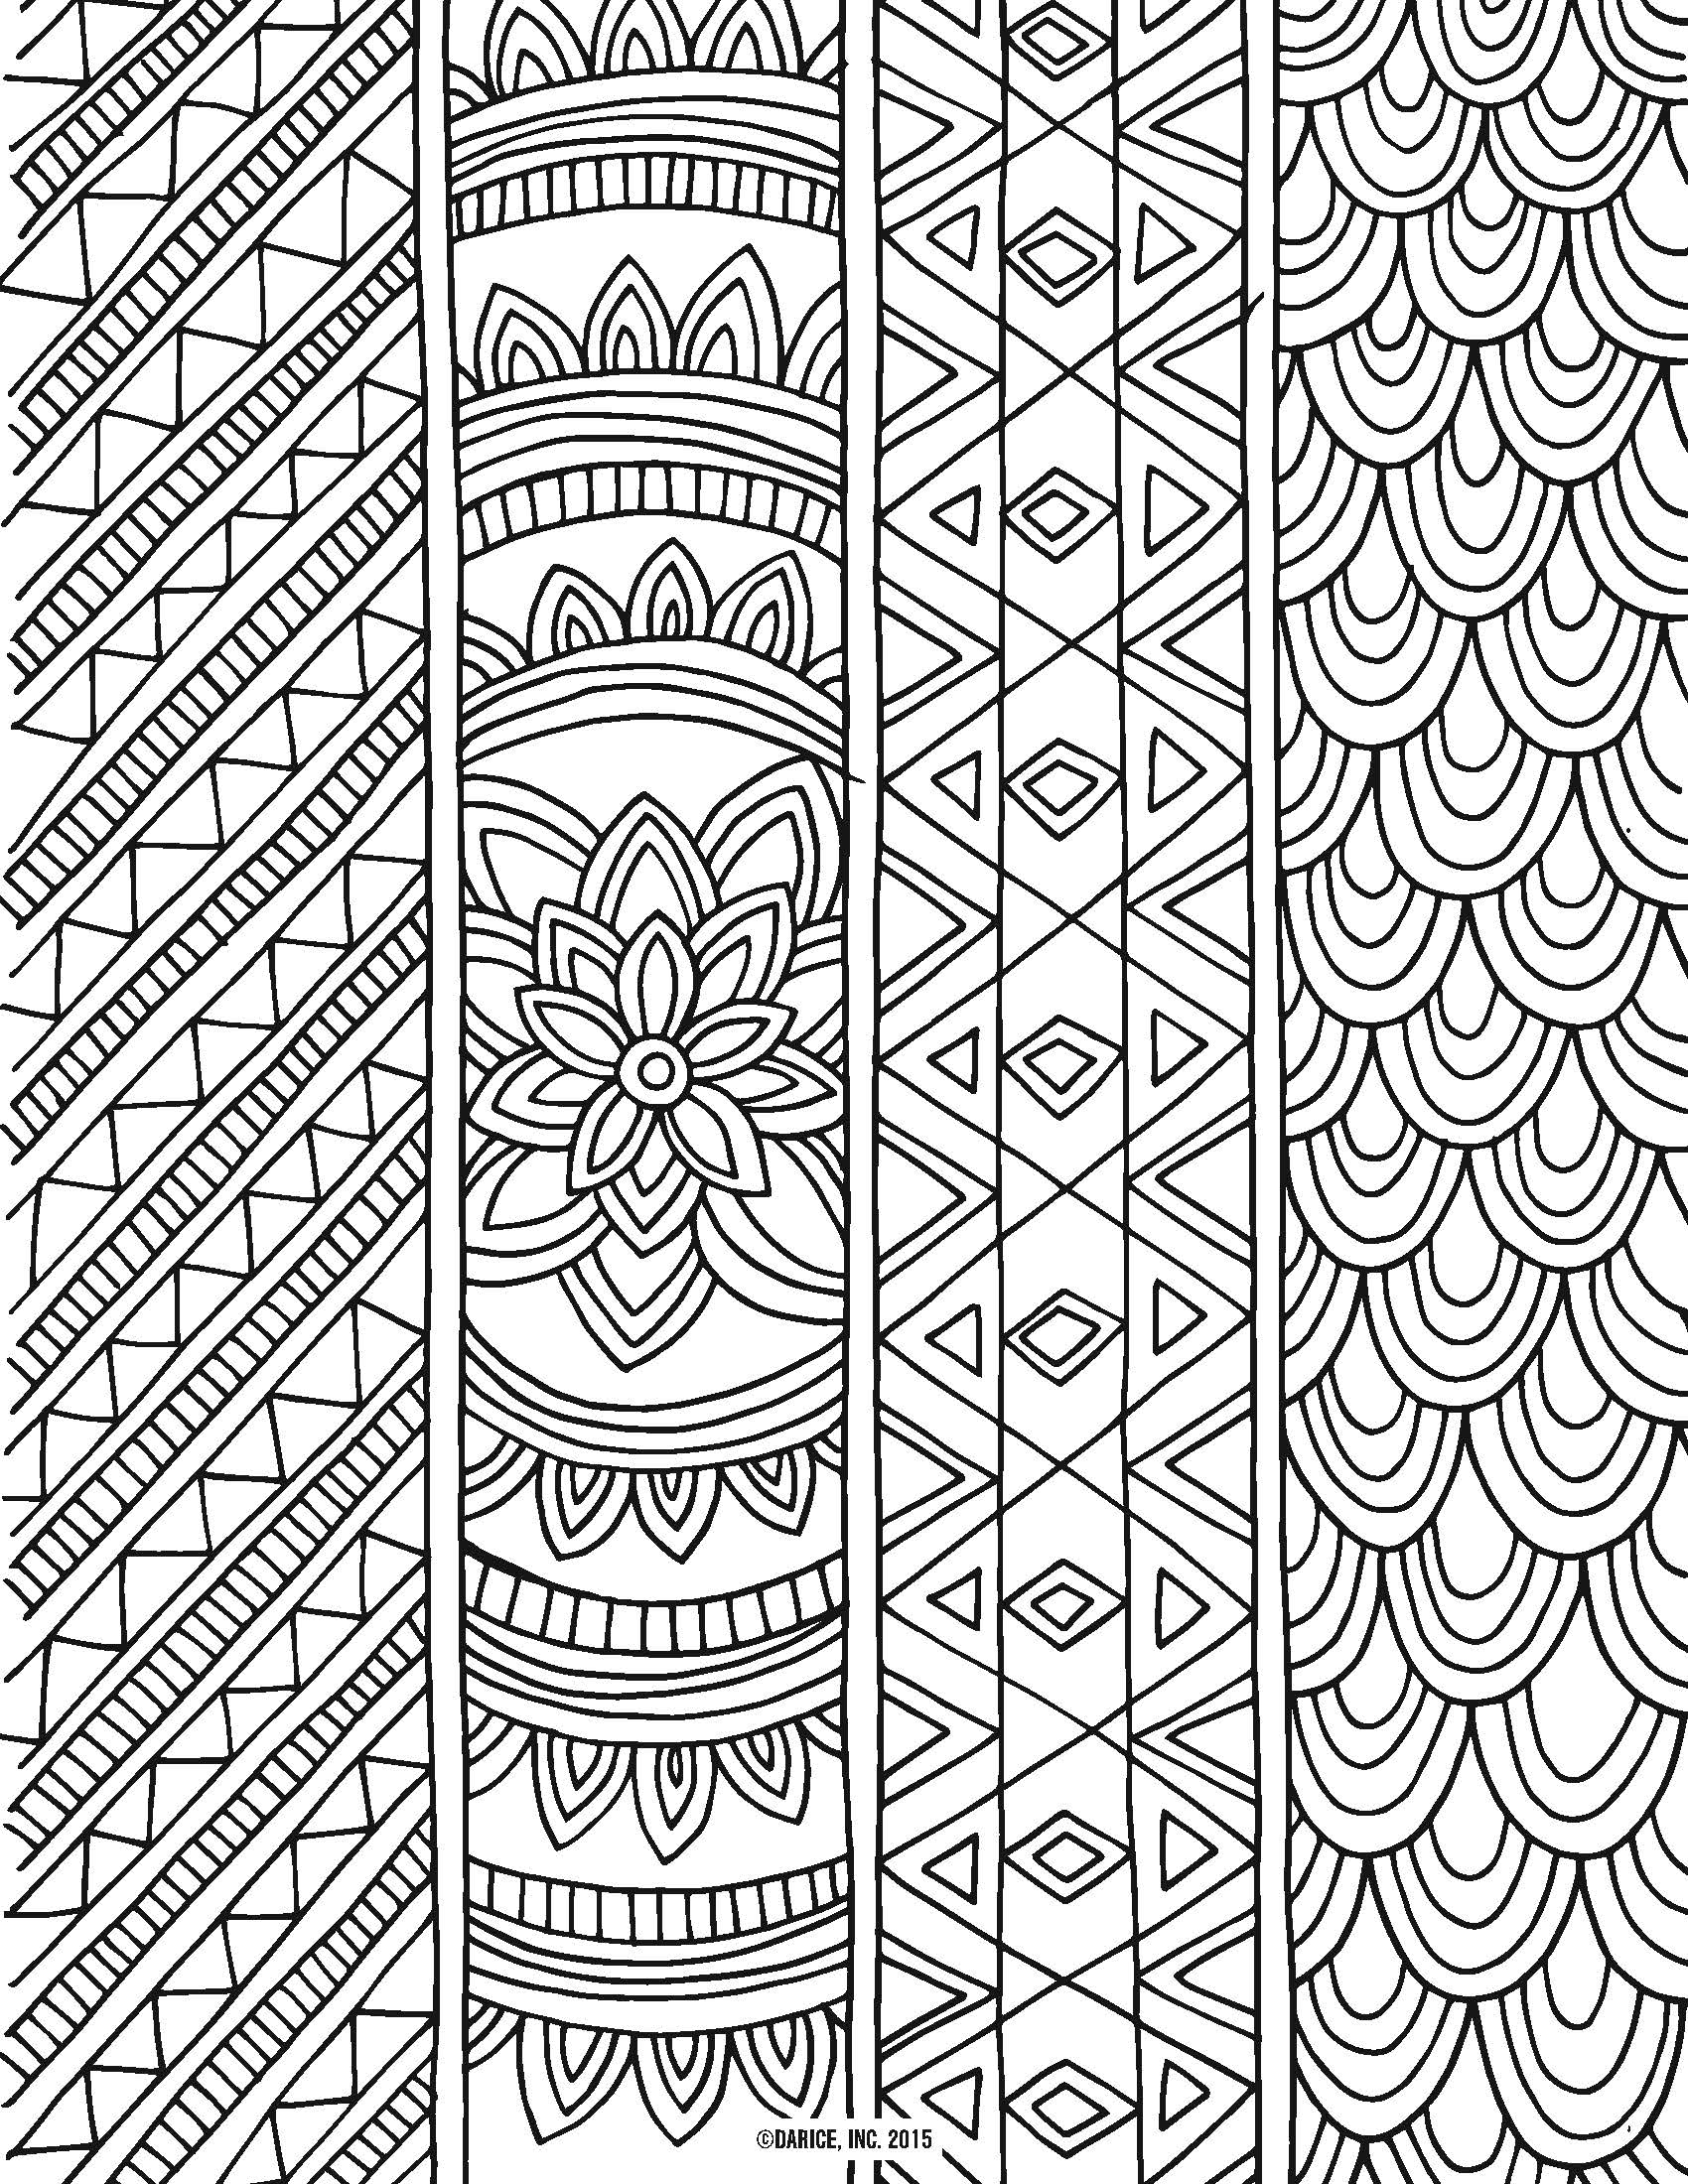 Coloring Pages For Adults Pdf Adult Coloring Pages Pdf Free At ...